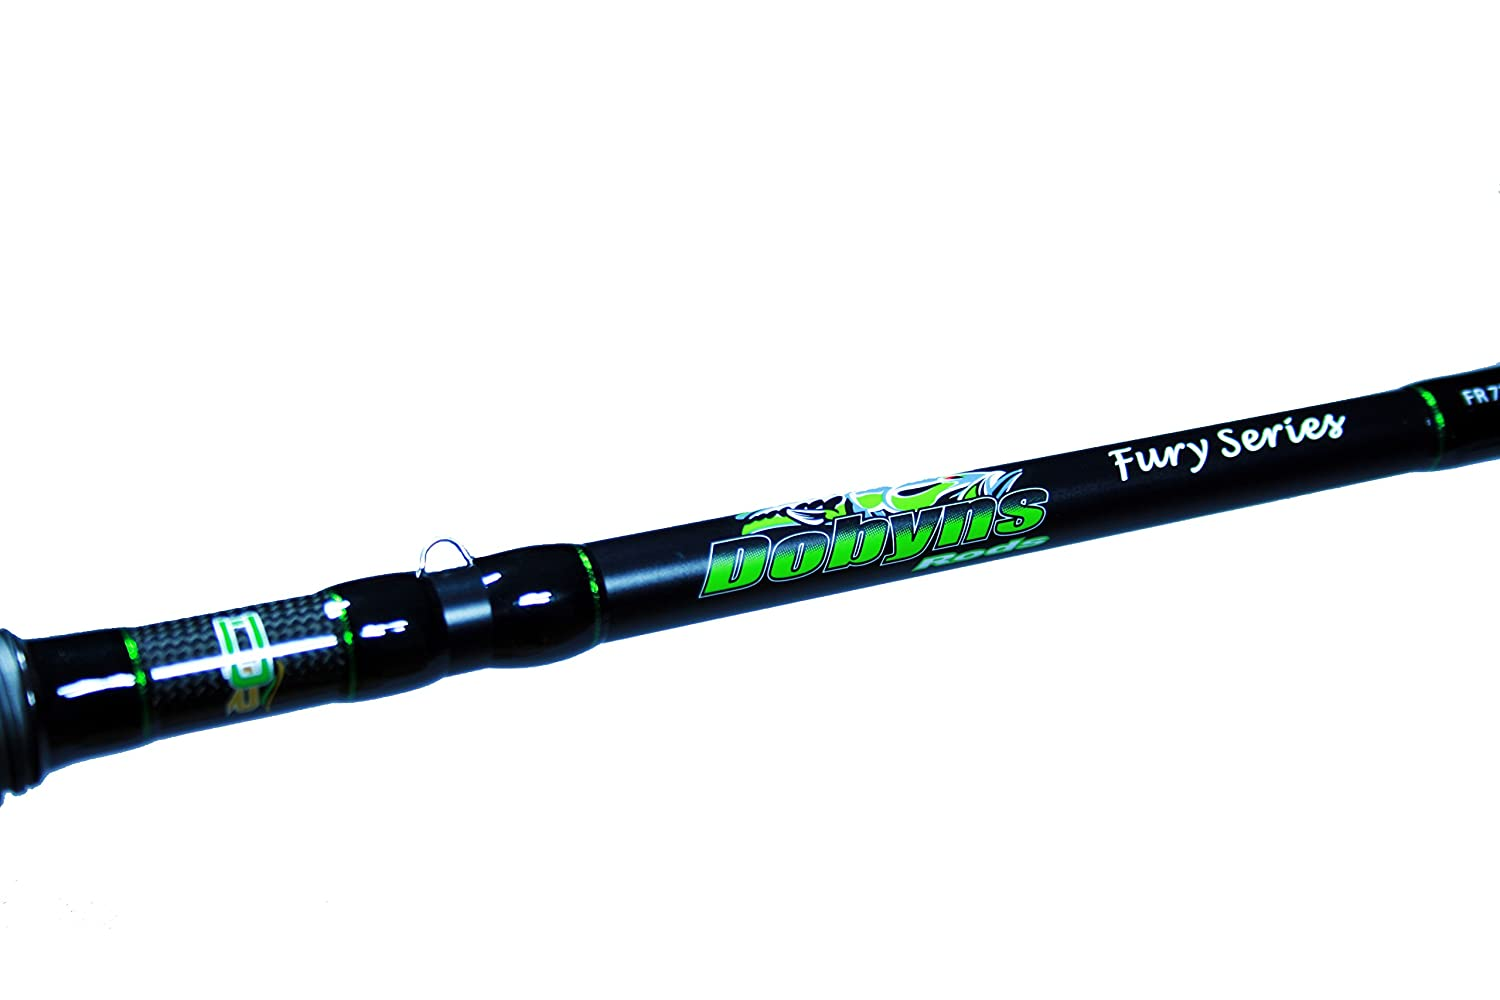 "Dobyns Rods Fury Series FR 705CB Medium/Heavy Power Mod-Fast Action Crankbait Rod, 7'0"", Black/Green"